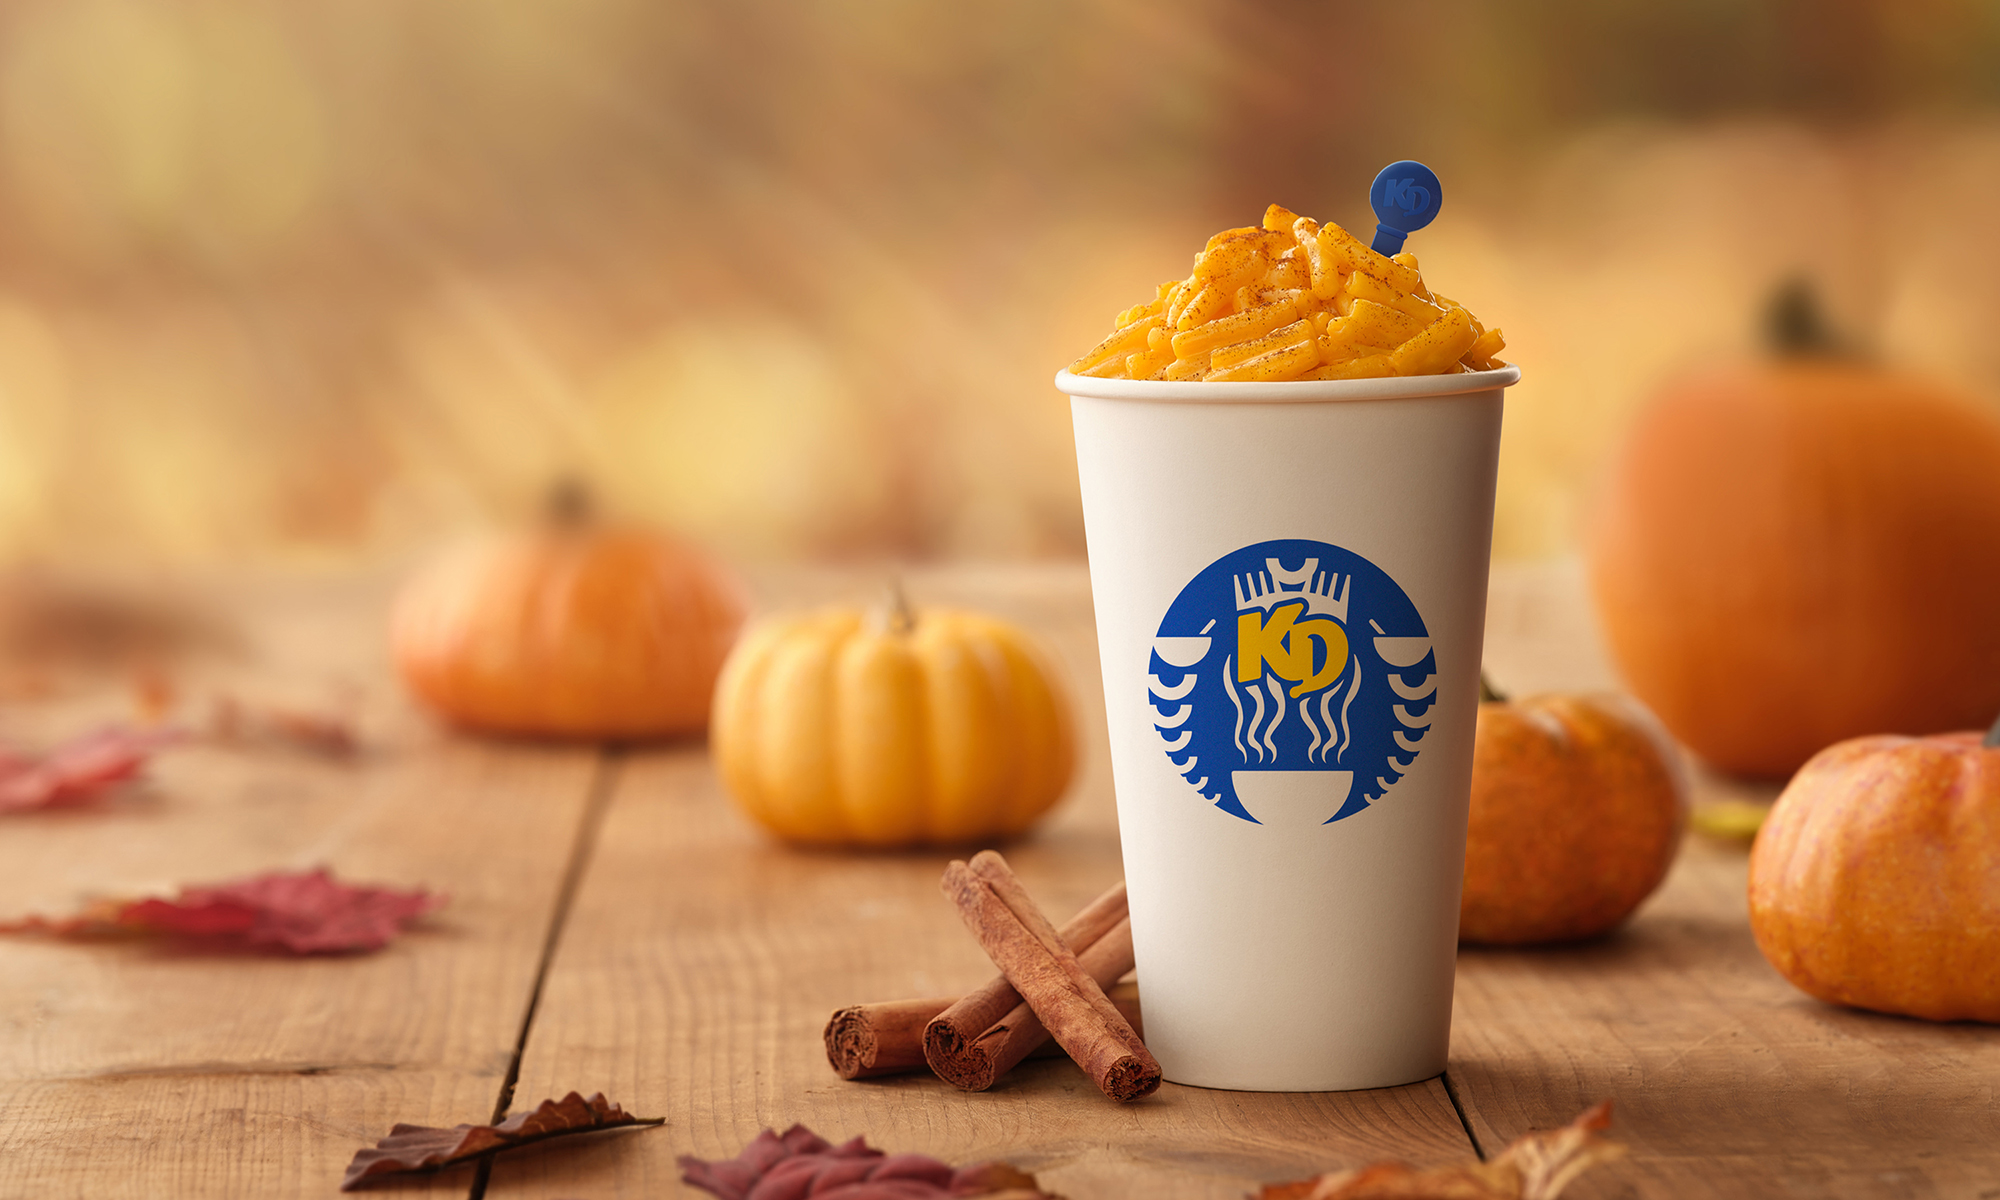 Pumpkin spice mac and cheese is coming but there's a wait list - WISH-TV